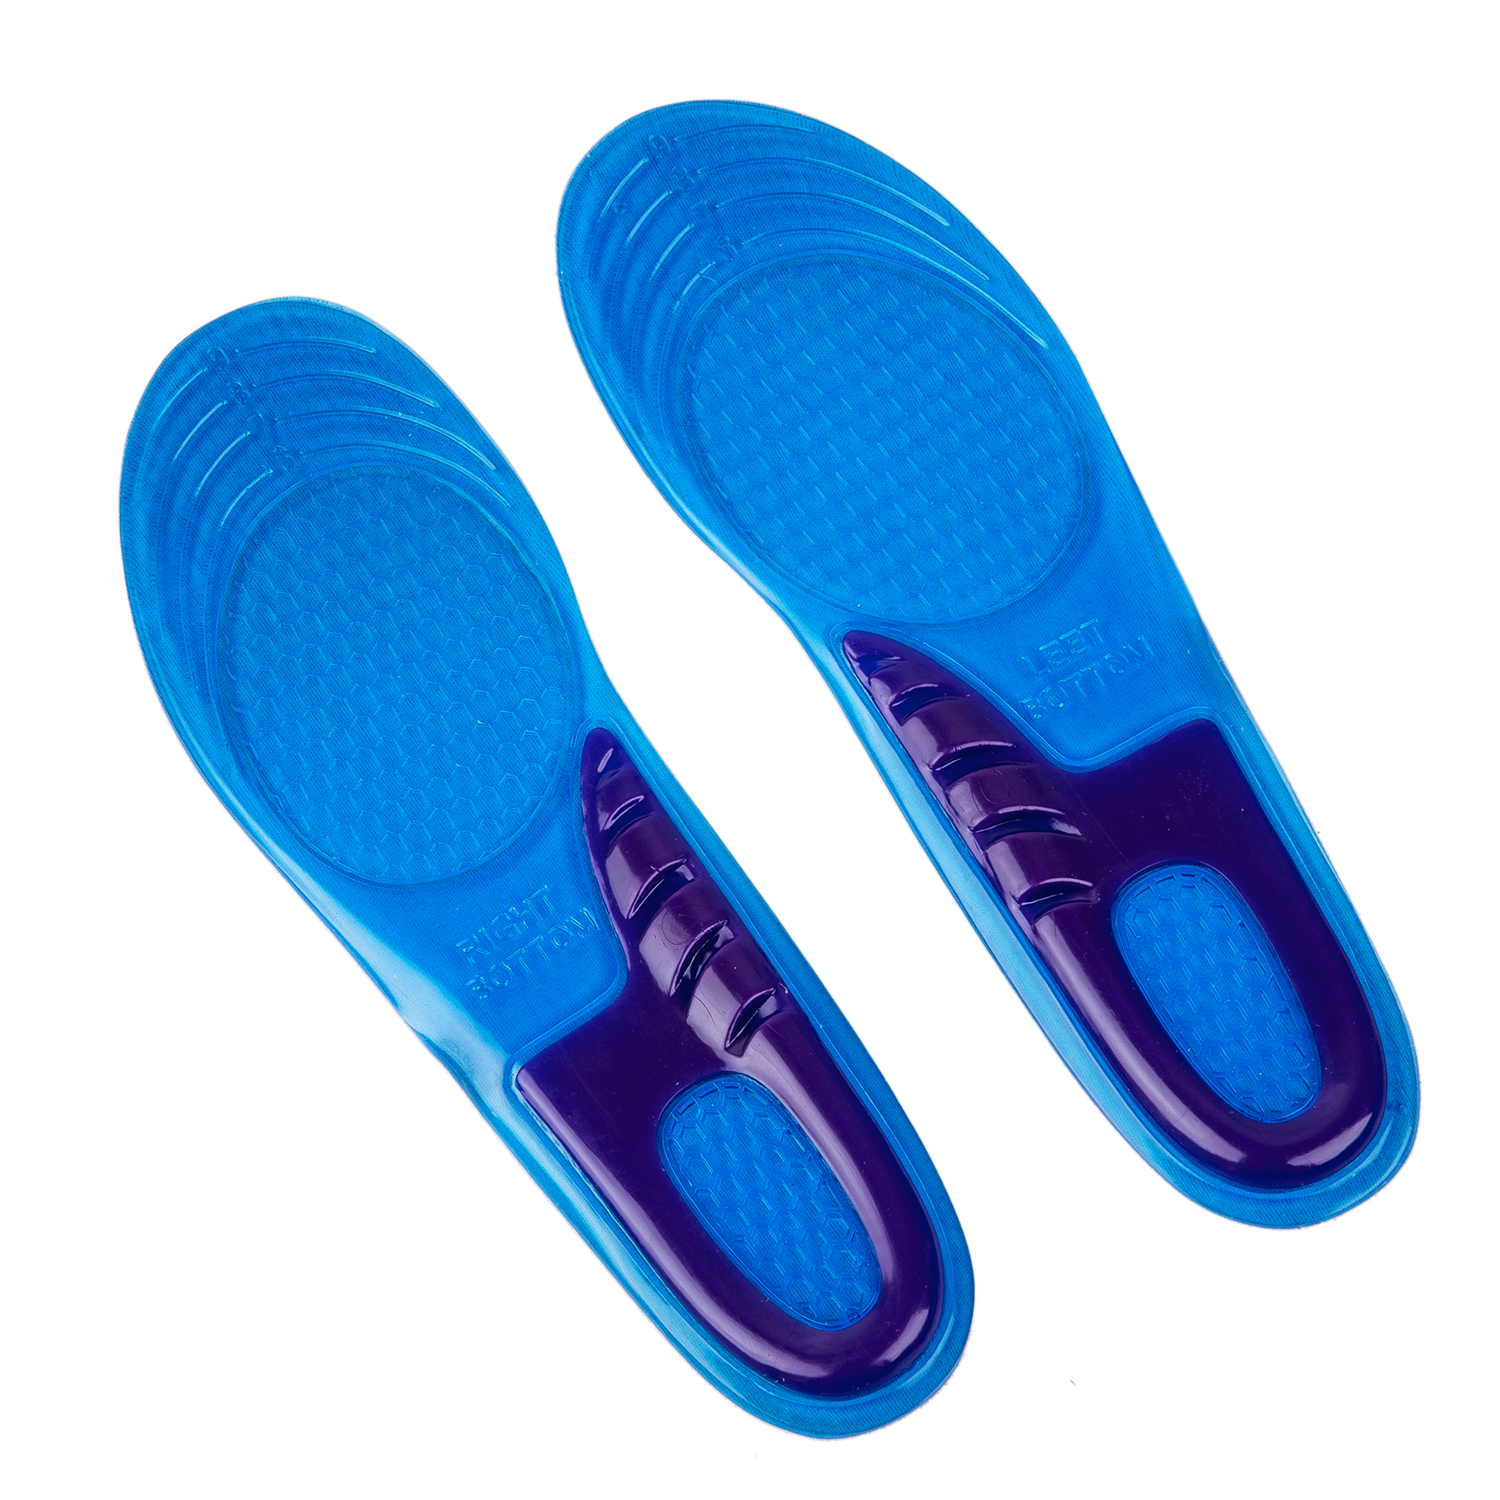 Hot-HIGH QUALITY NEW ORTHOTIC ARCH SUPPORT MASSAGING GEL INSOLES Confortable wear